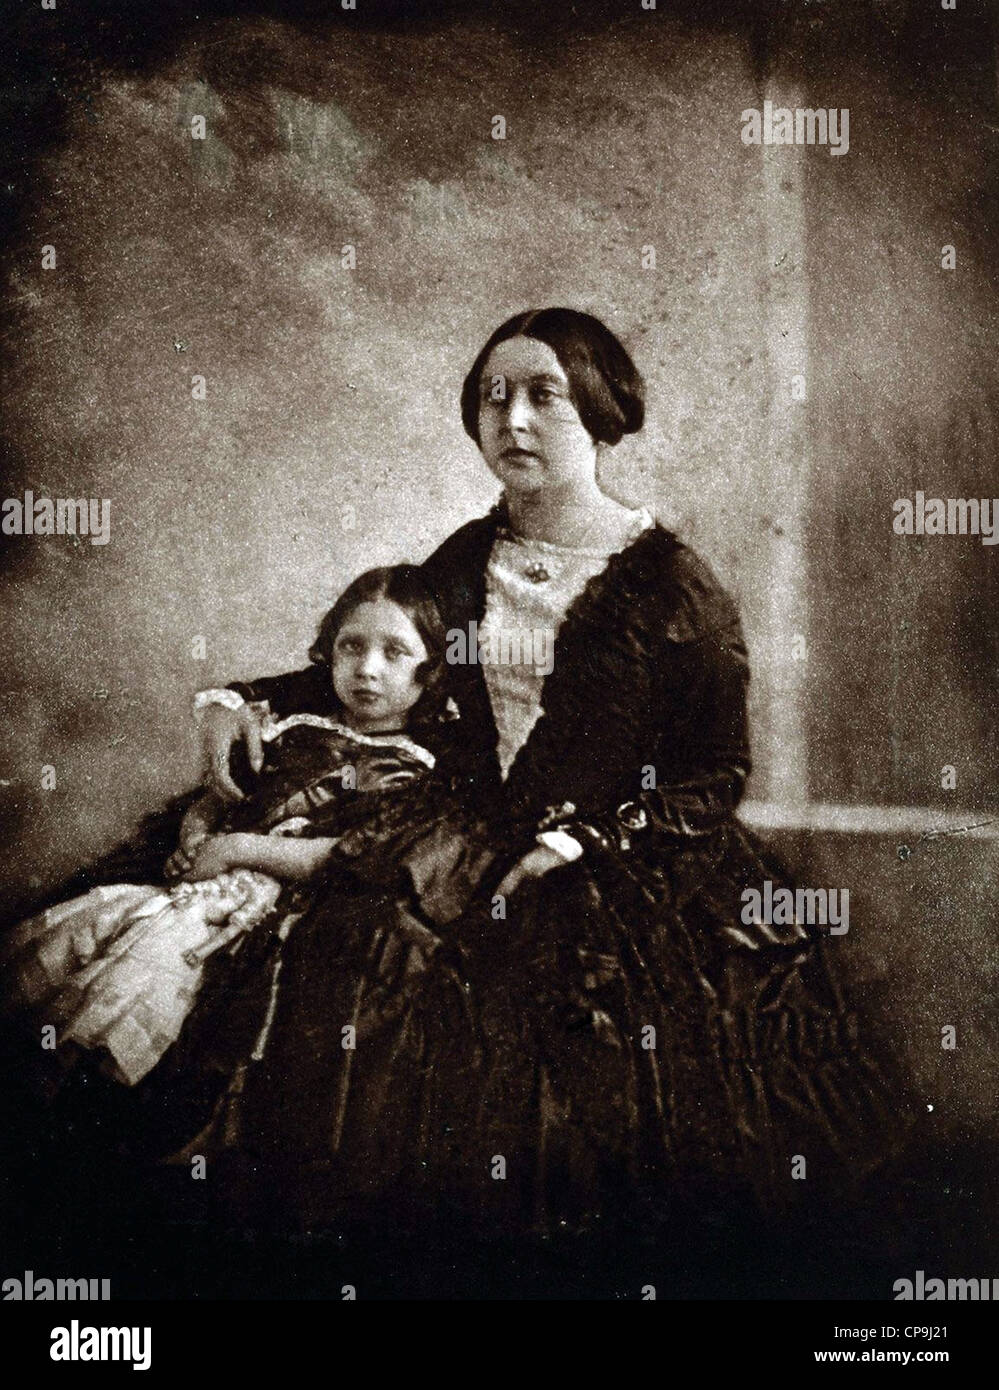 La reine Victoria, avec la Princesse Royale, vers 1844-5 Photo Stock